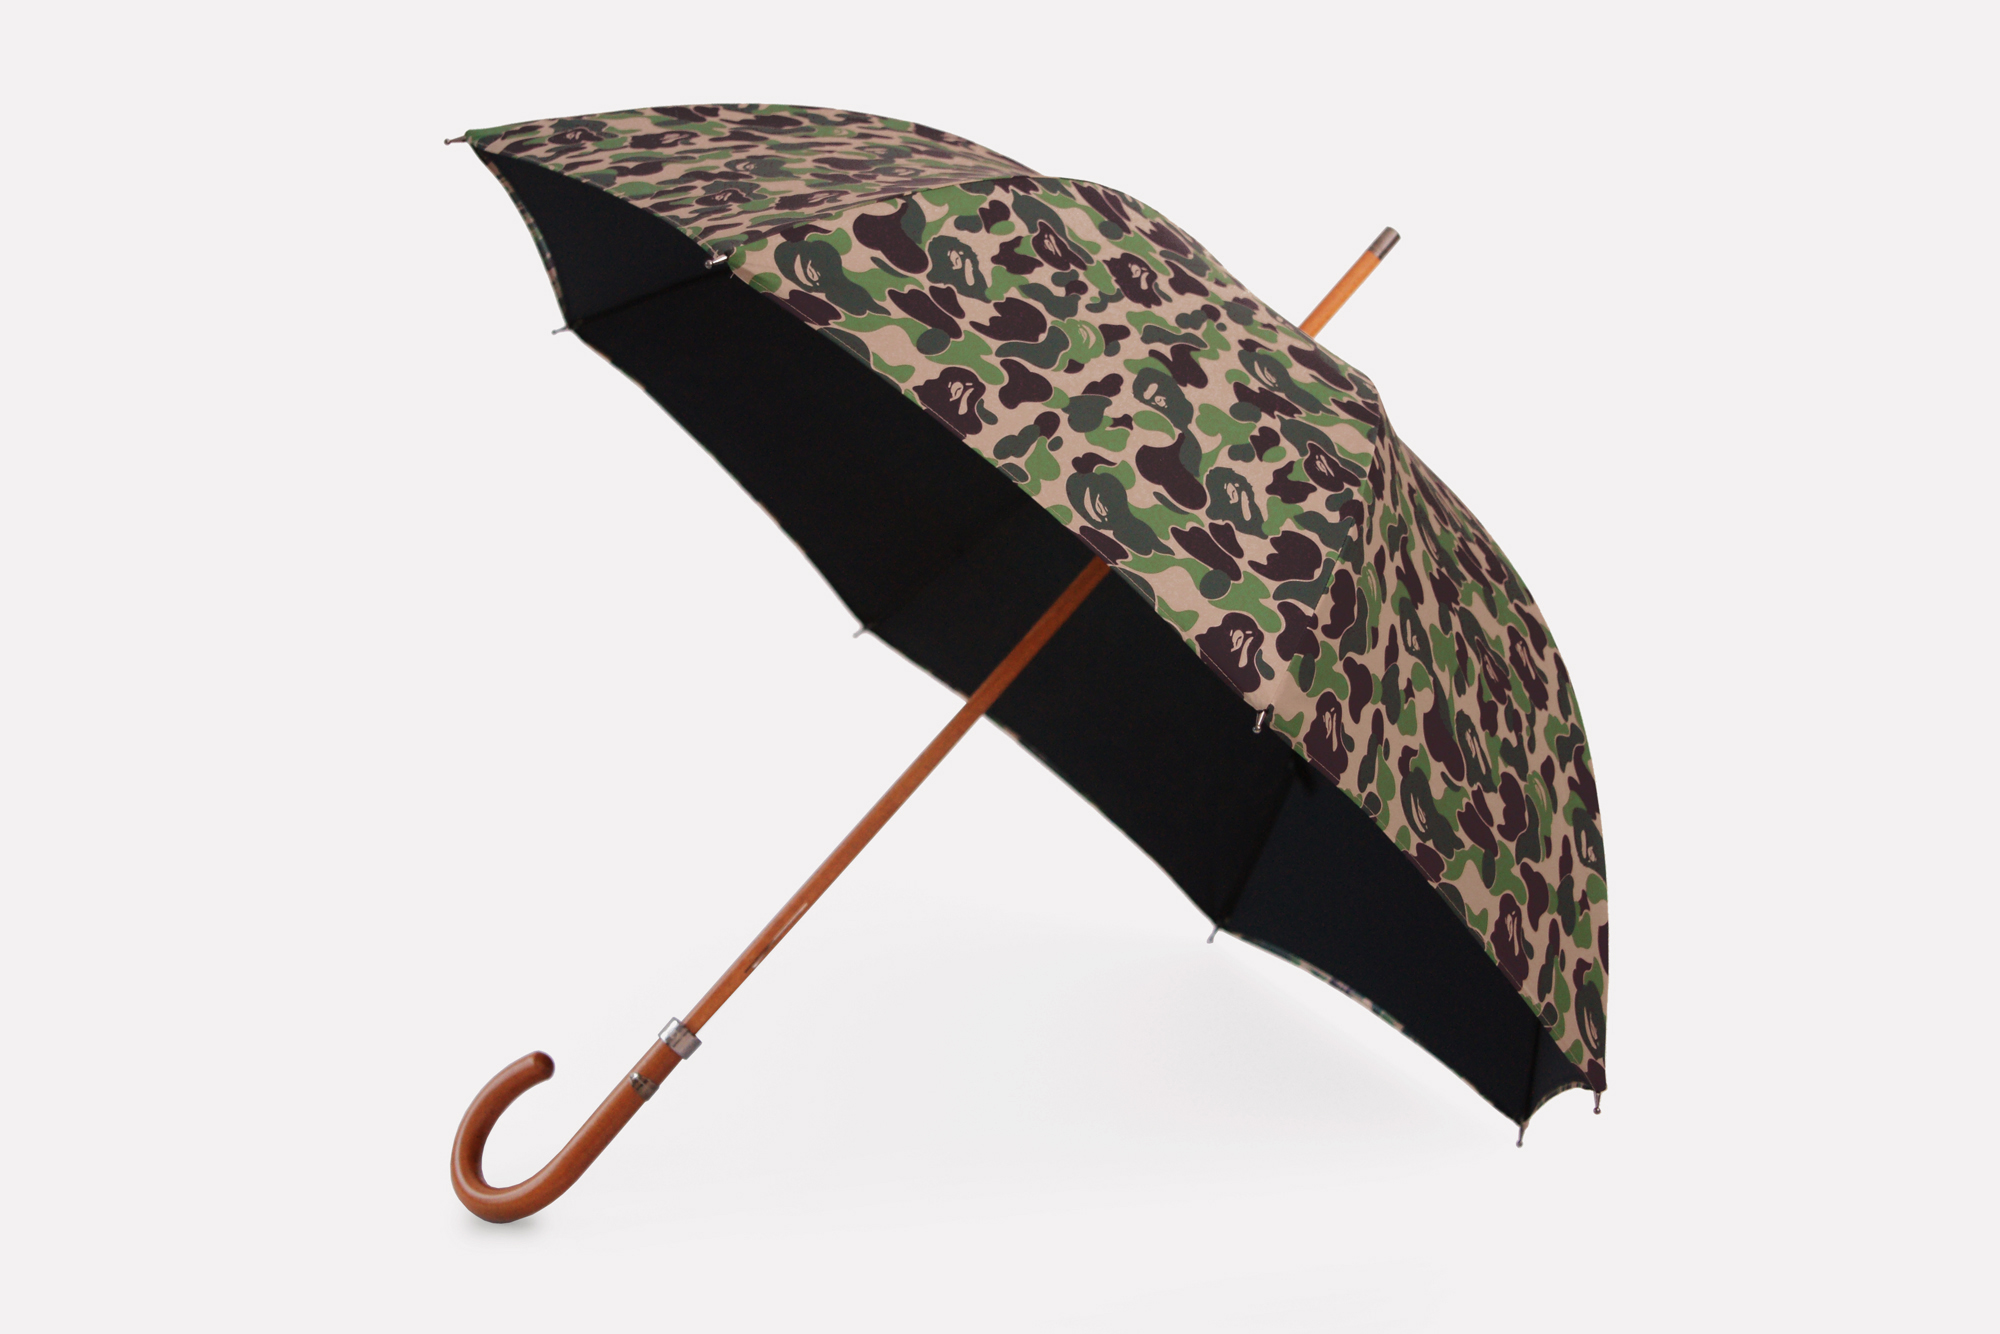 Mr. Bathing Ape x London Undercover ABC Camouflage Umbrella